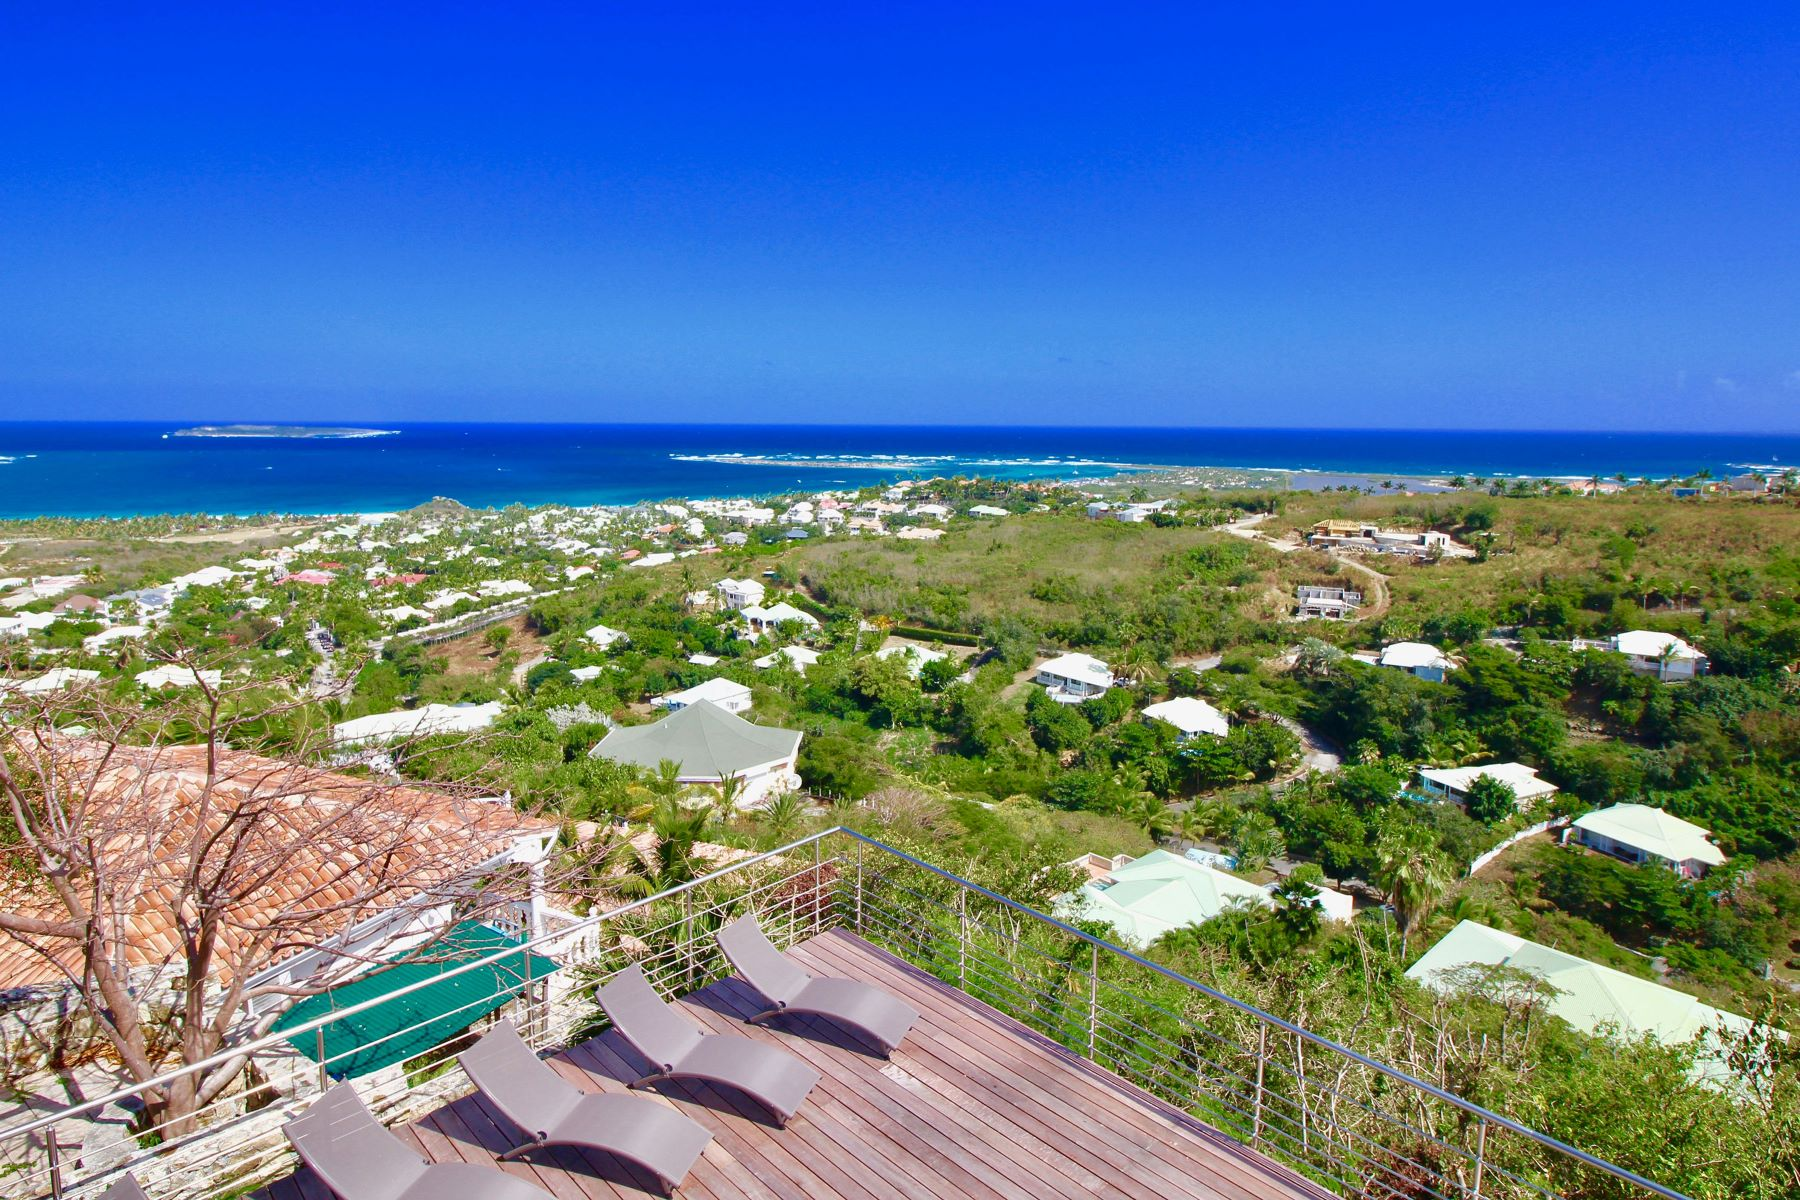 Single Family Home for Sale at Panoramique Orient Bay, 97150 St. Martin